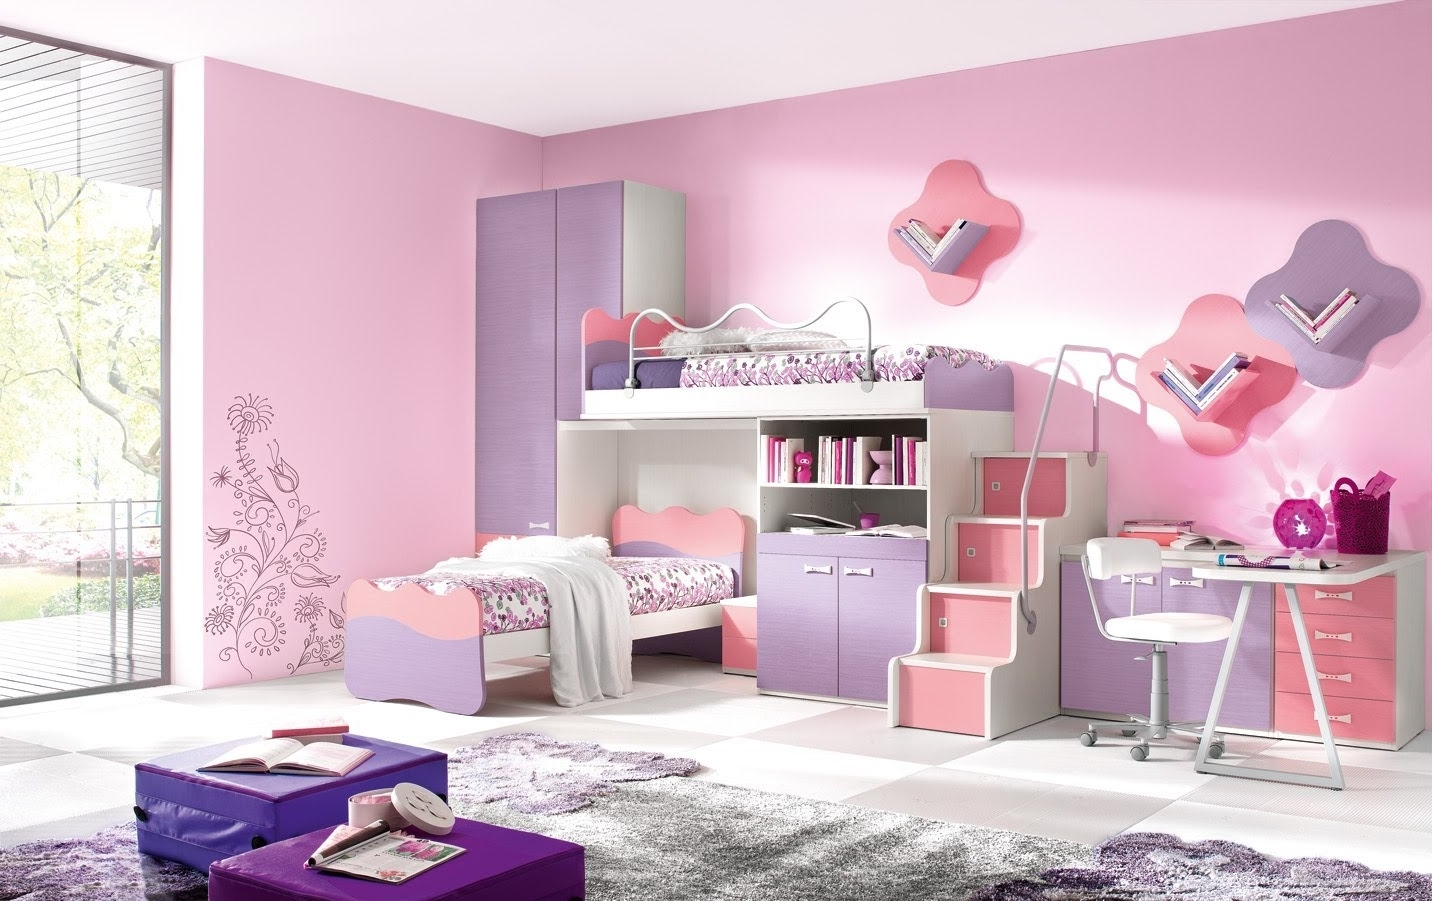 Teenage Girls Room Designs | Fujizaki In Girls Room (Image 24 of 24)